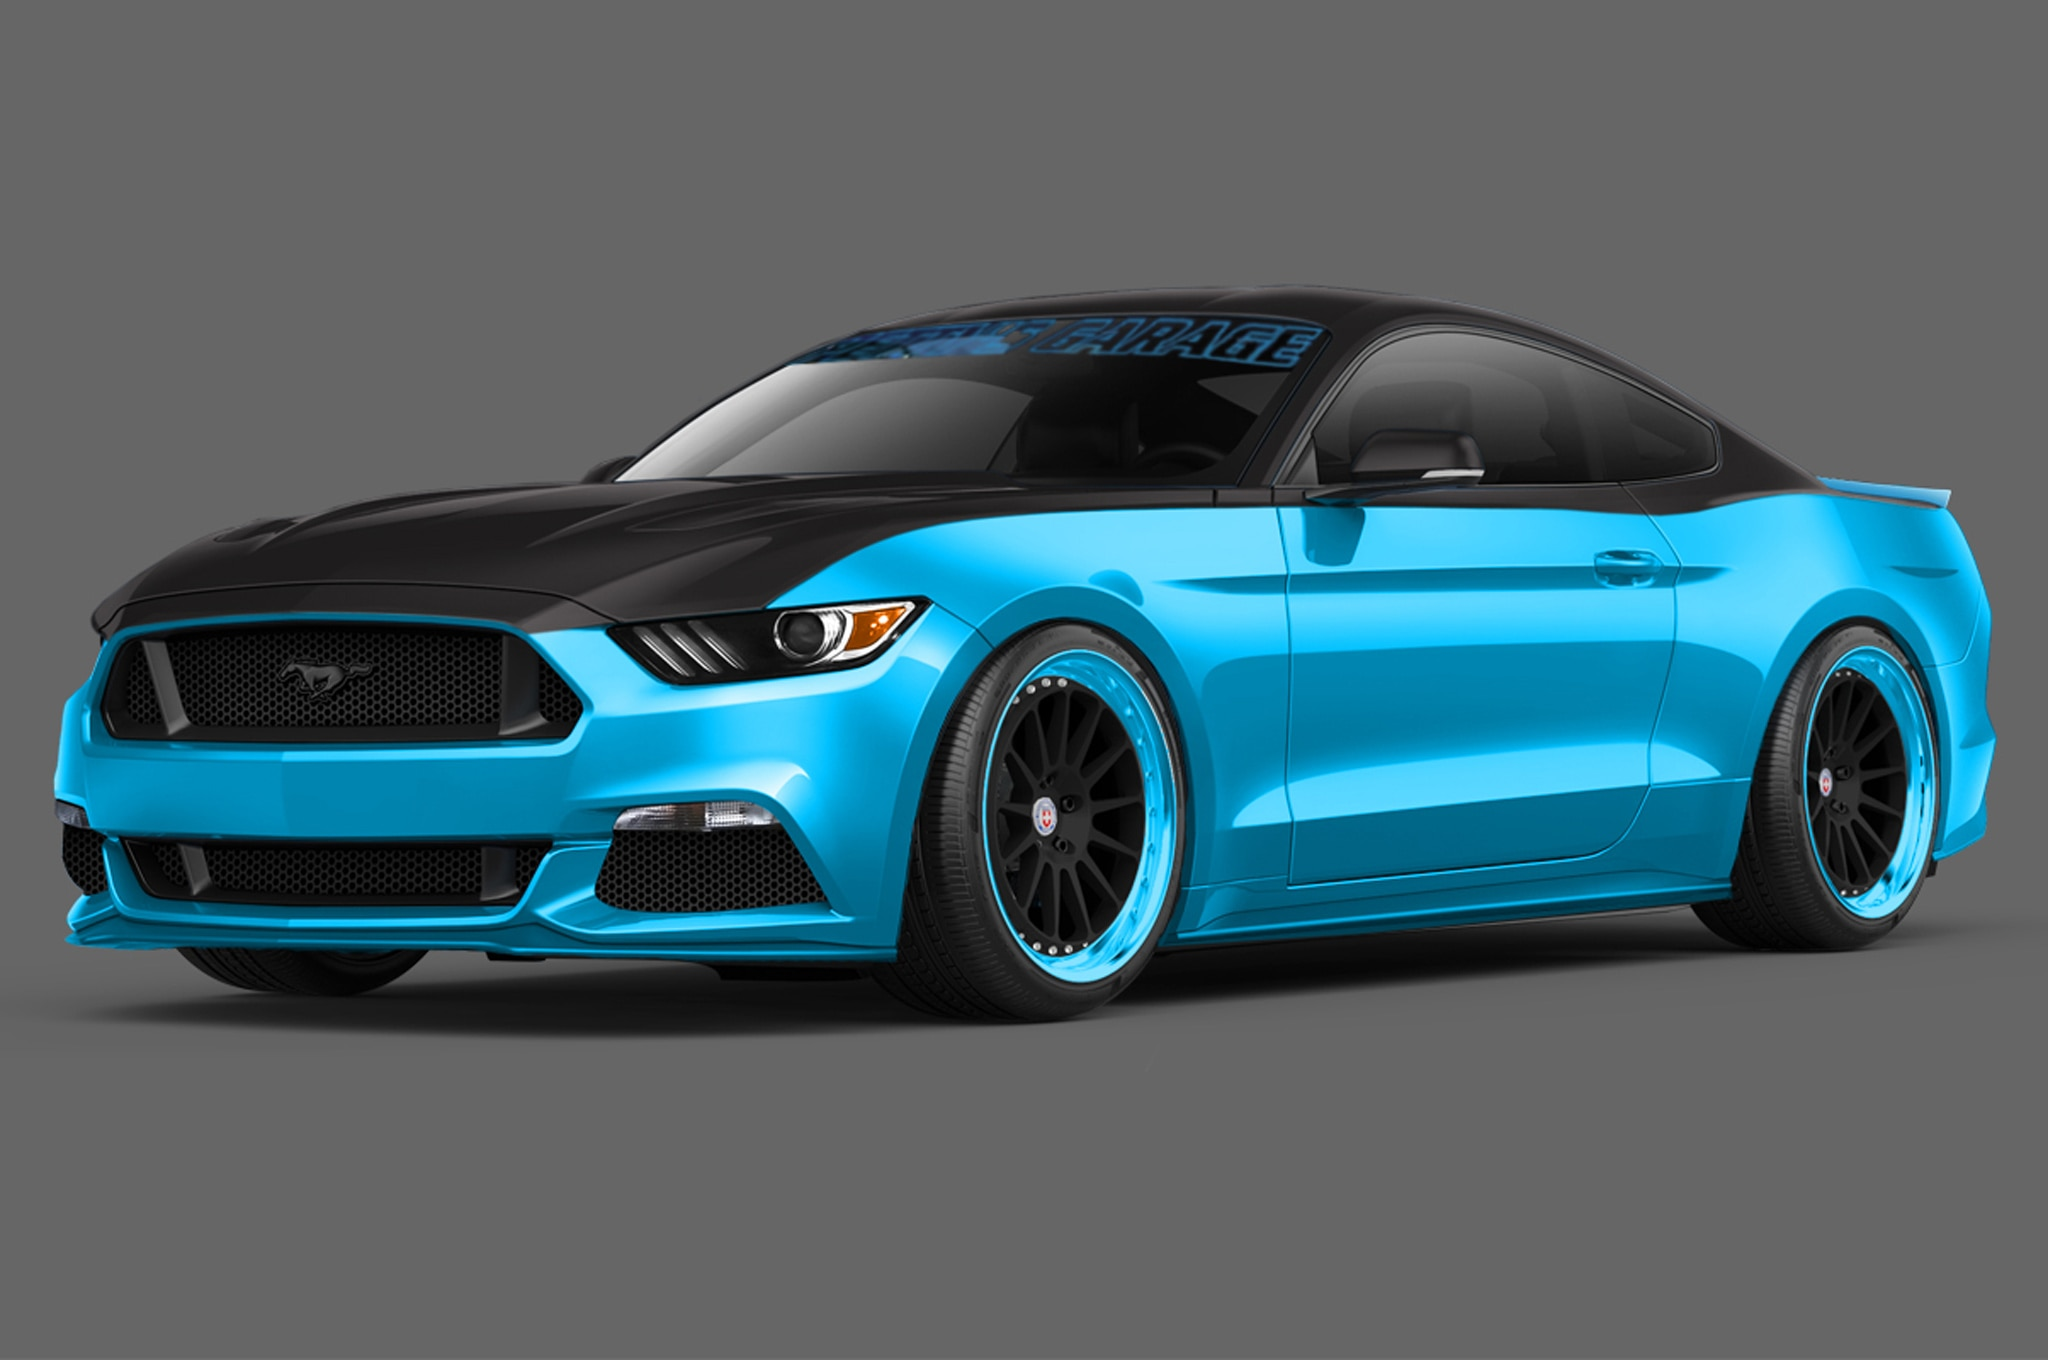 2015 Ford Mustang By Pettys Garage For 2014 SEMA Show